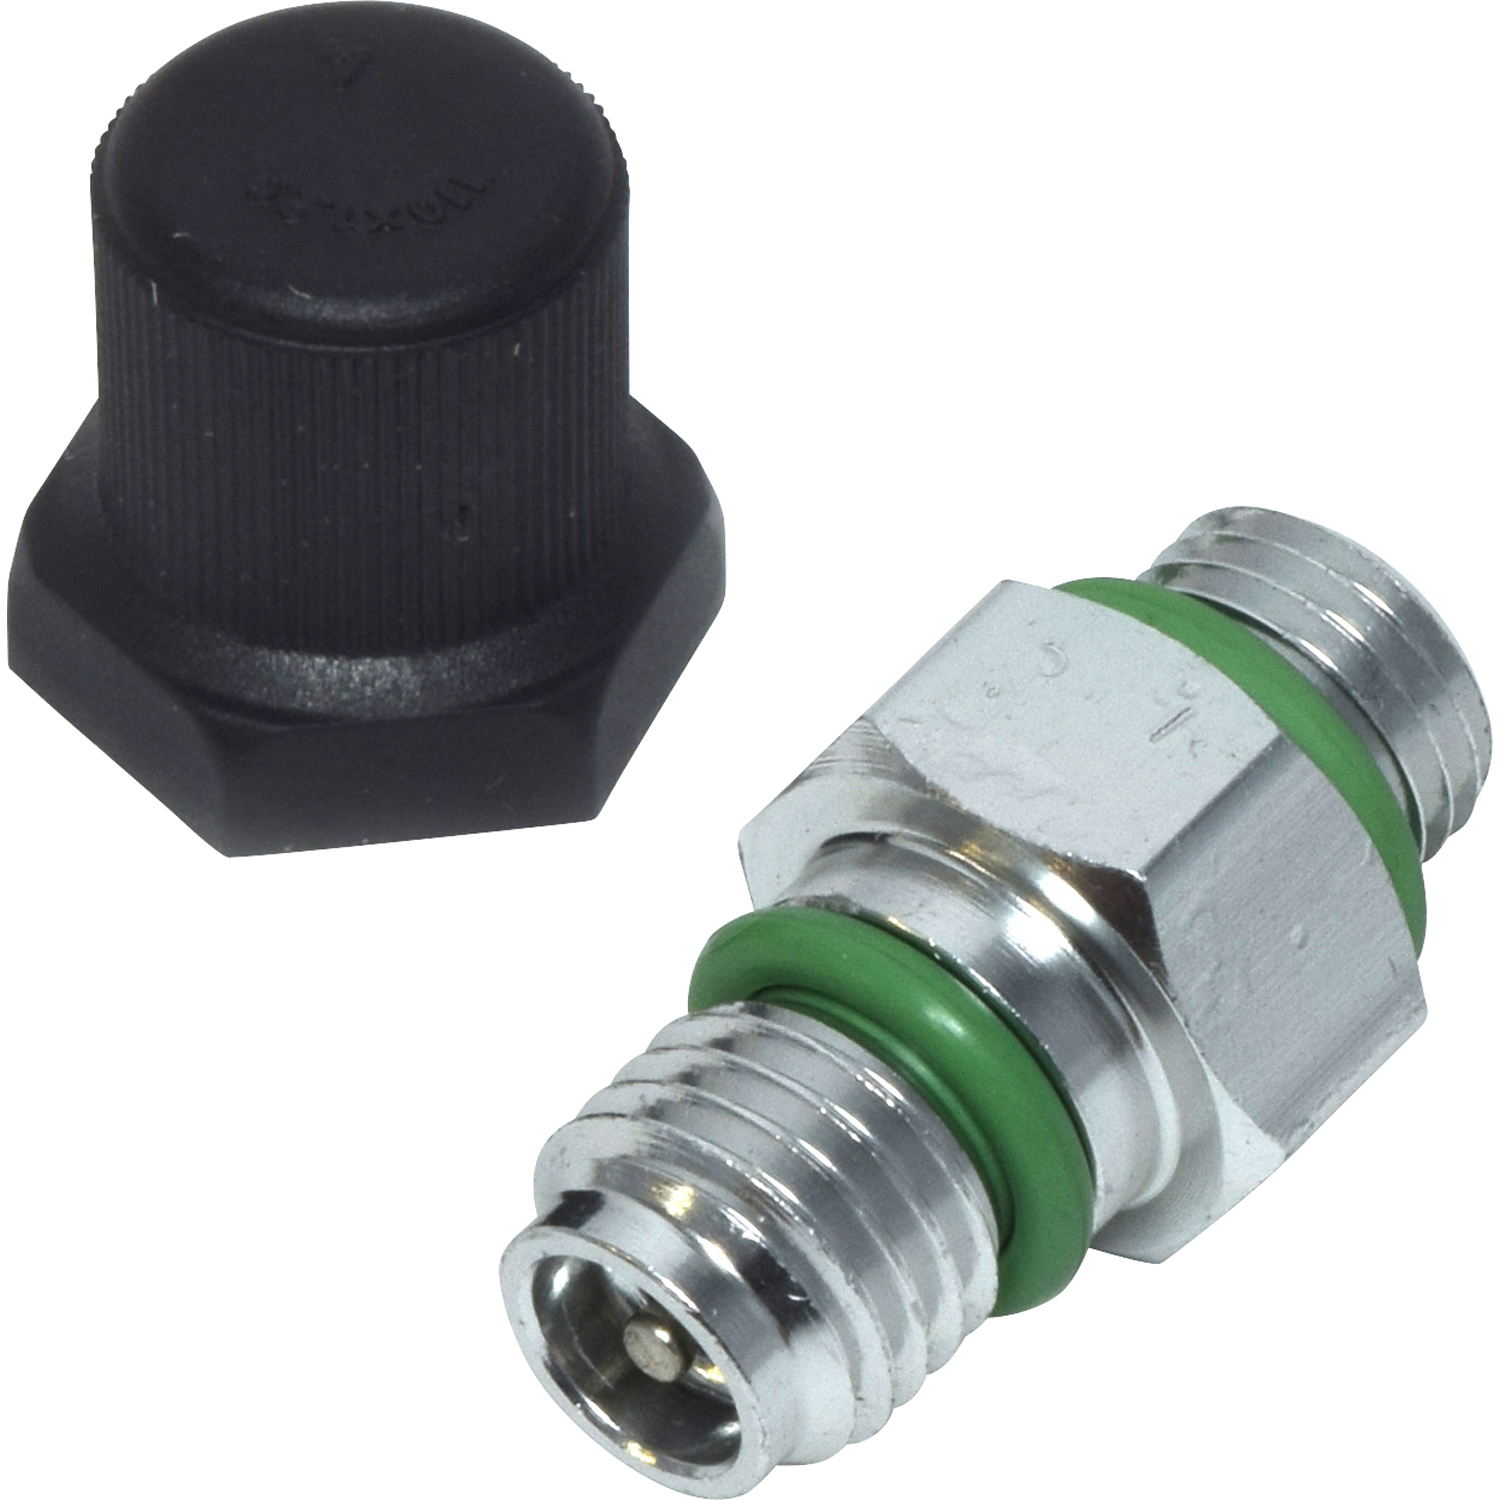 Service Port Adapter GA 1535C